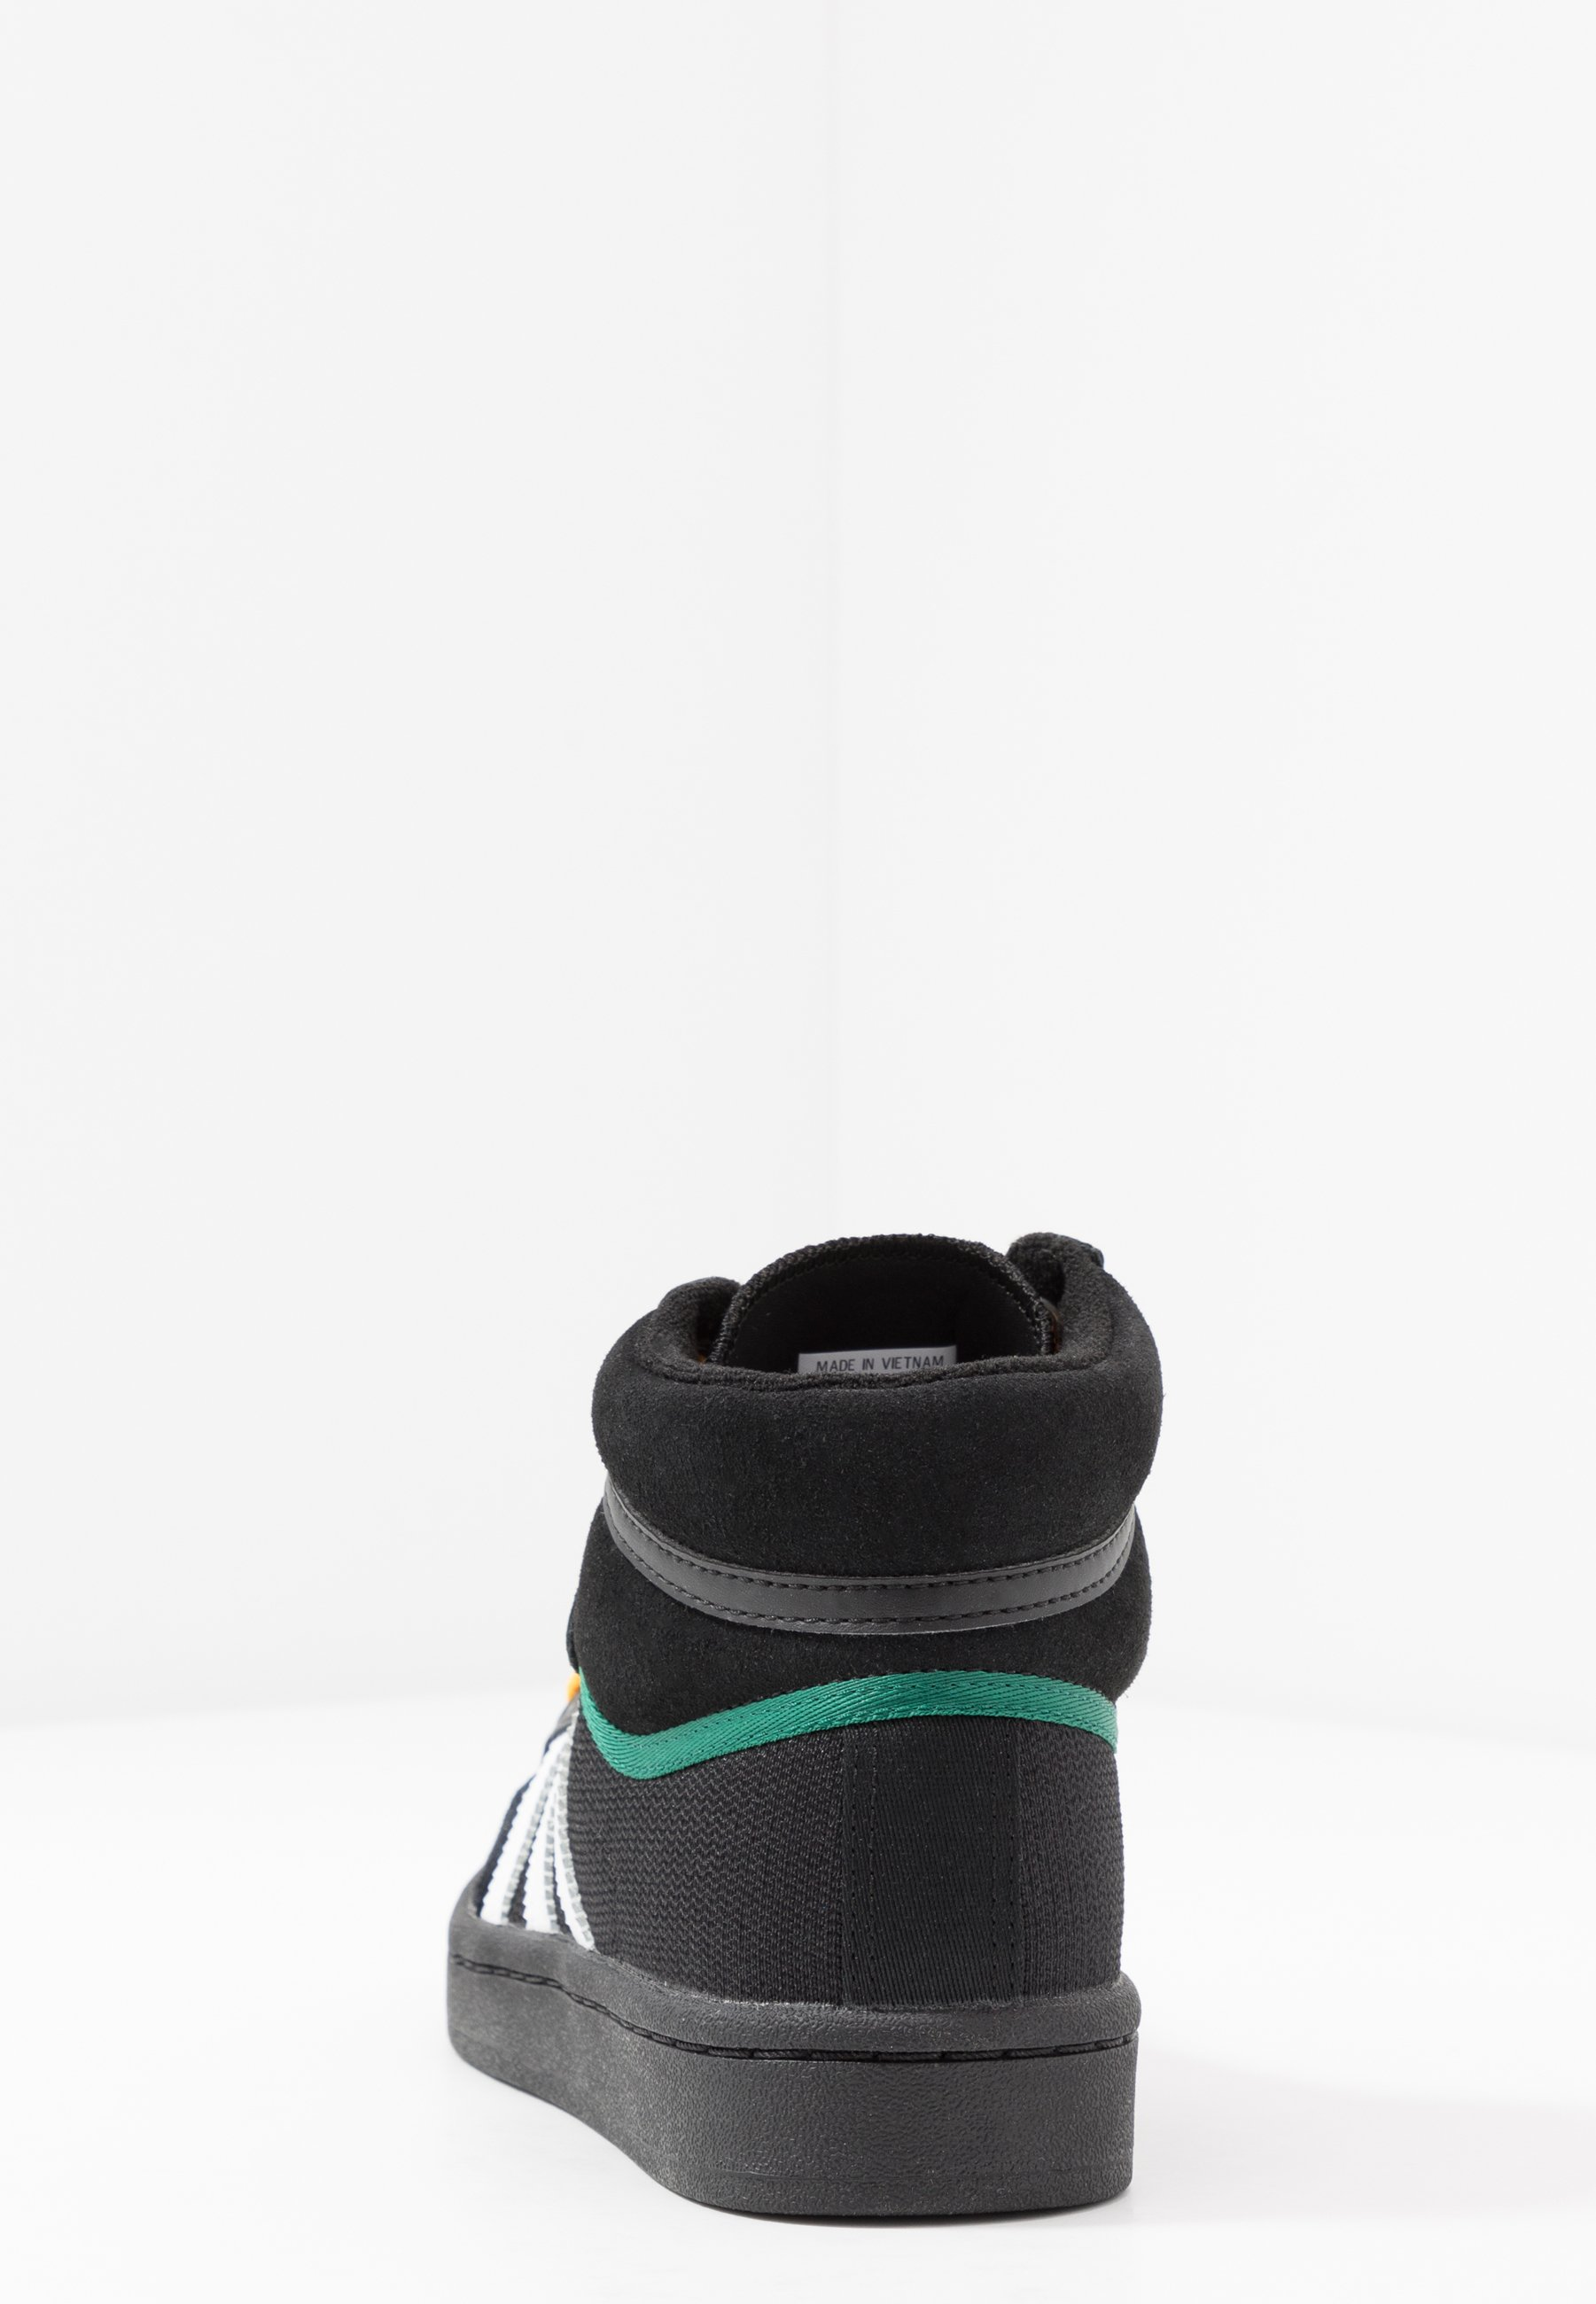 Adidas Originals Americana - Höga Sneakers Core Black/collegiate Green/active Gold